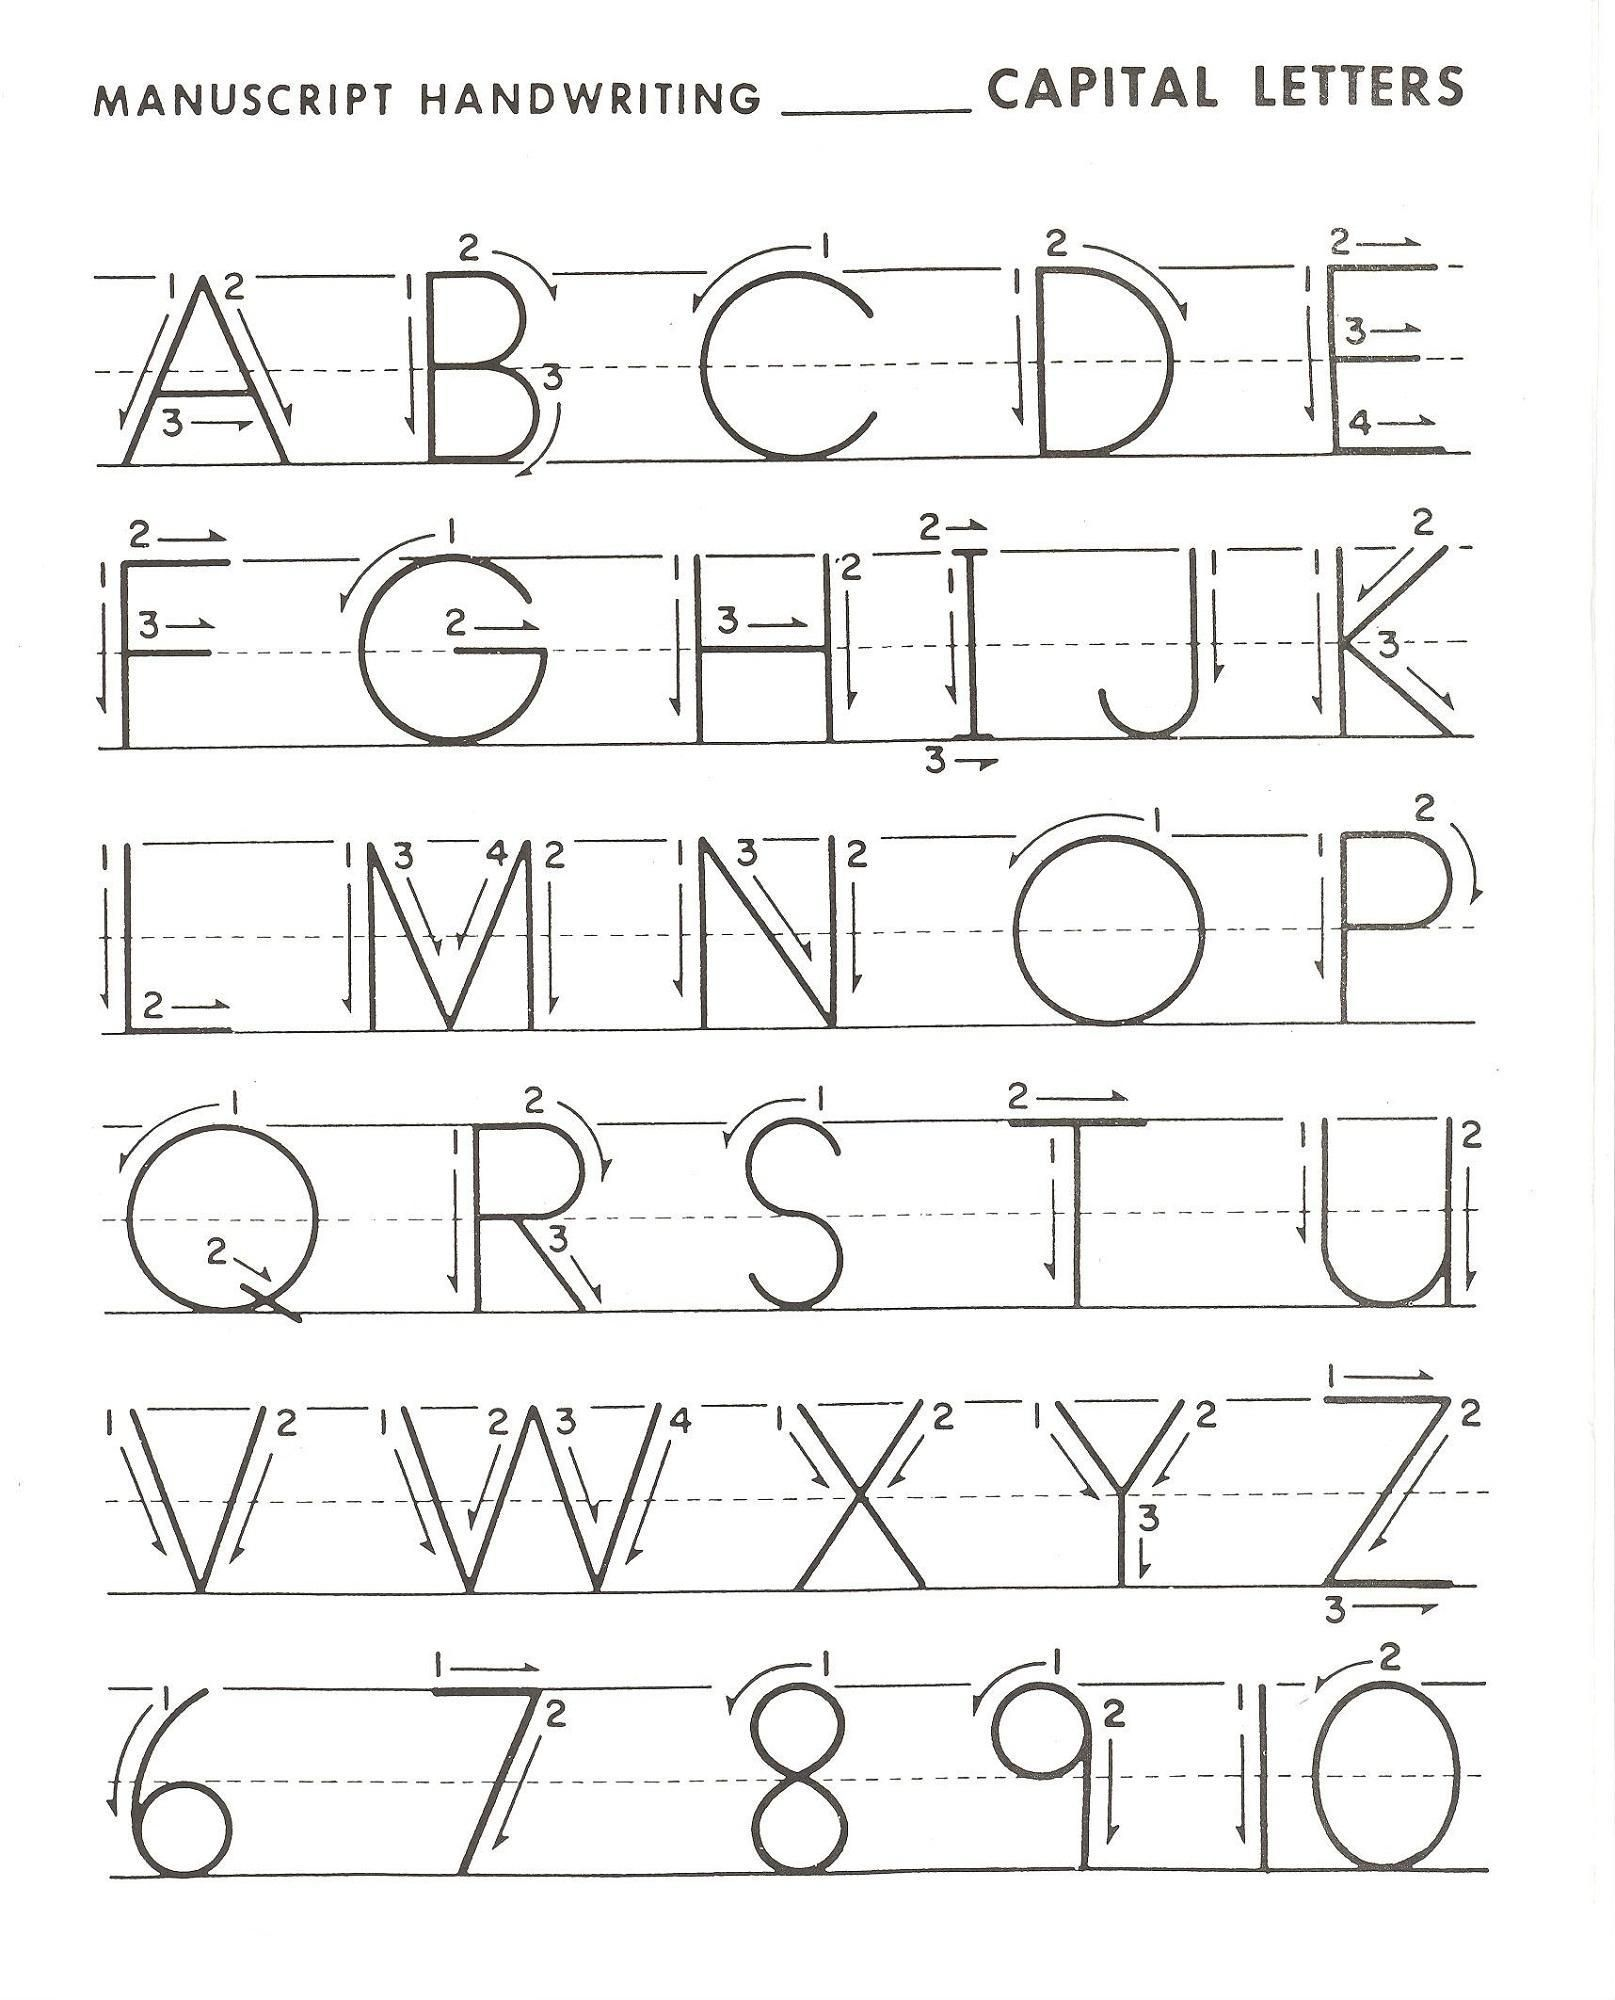 Alphabet Capital Letters Worksheet In